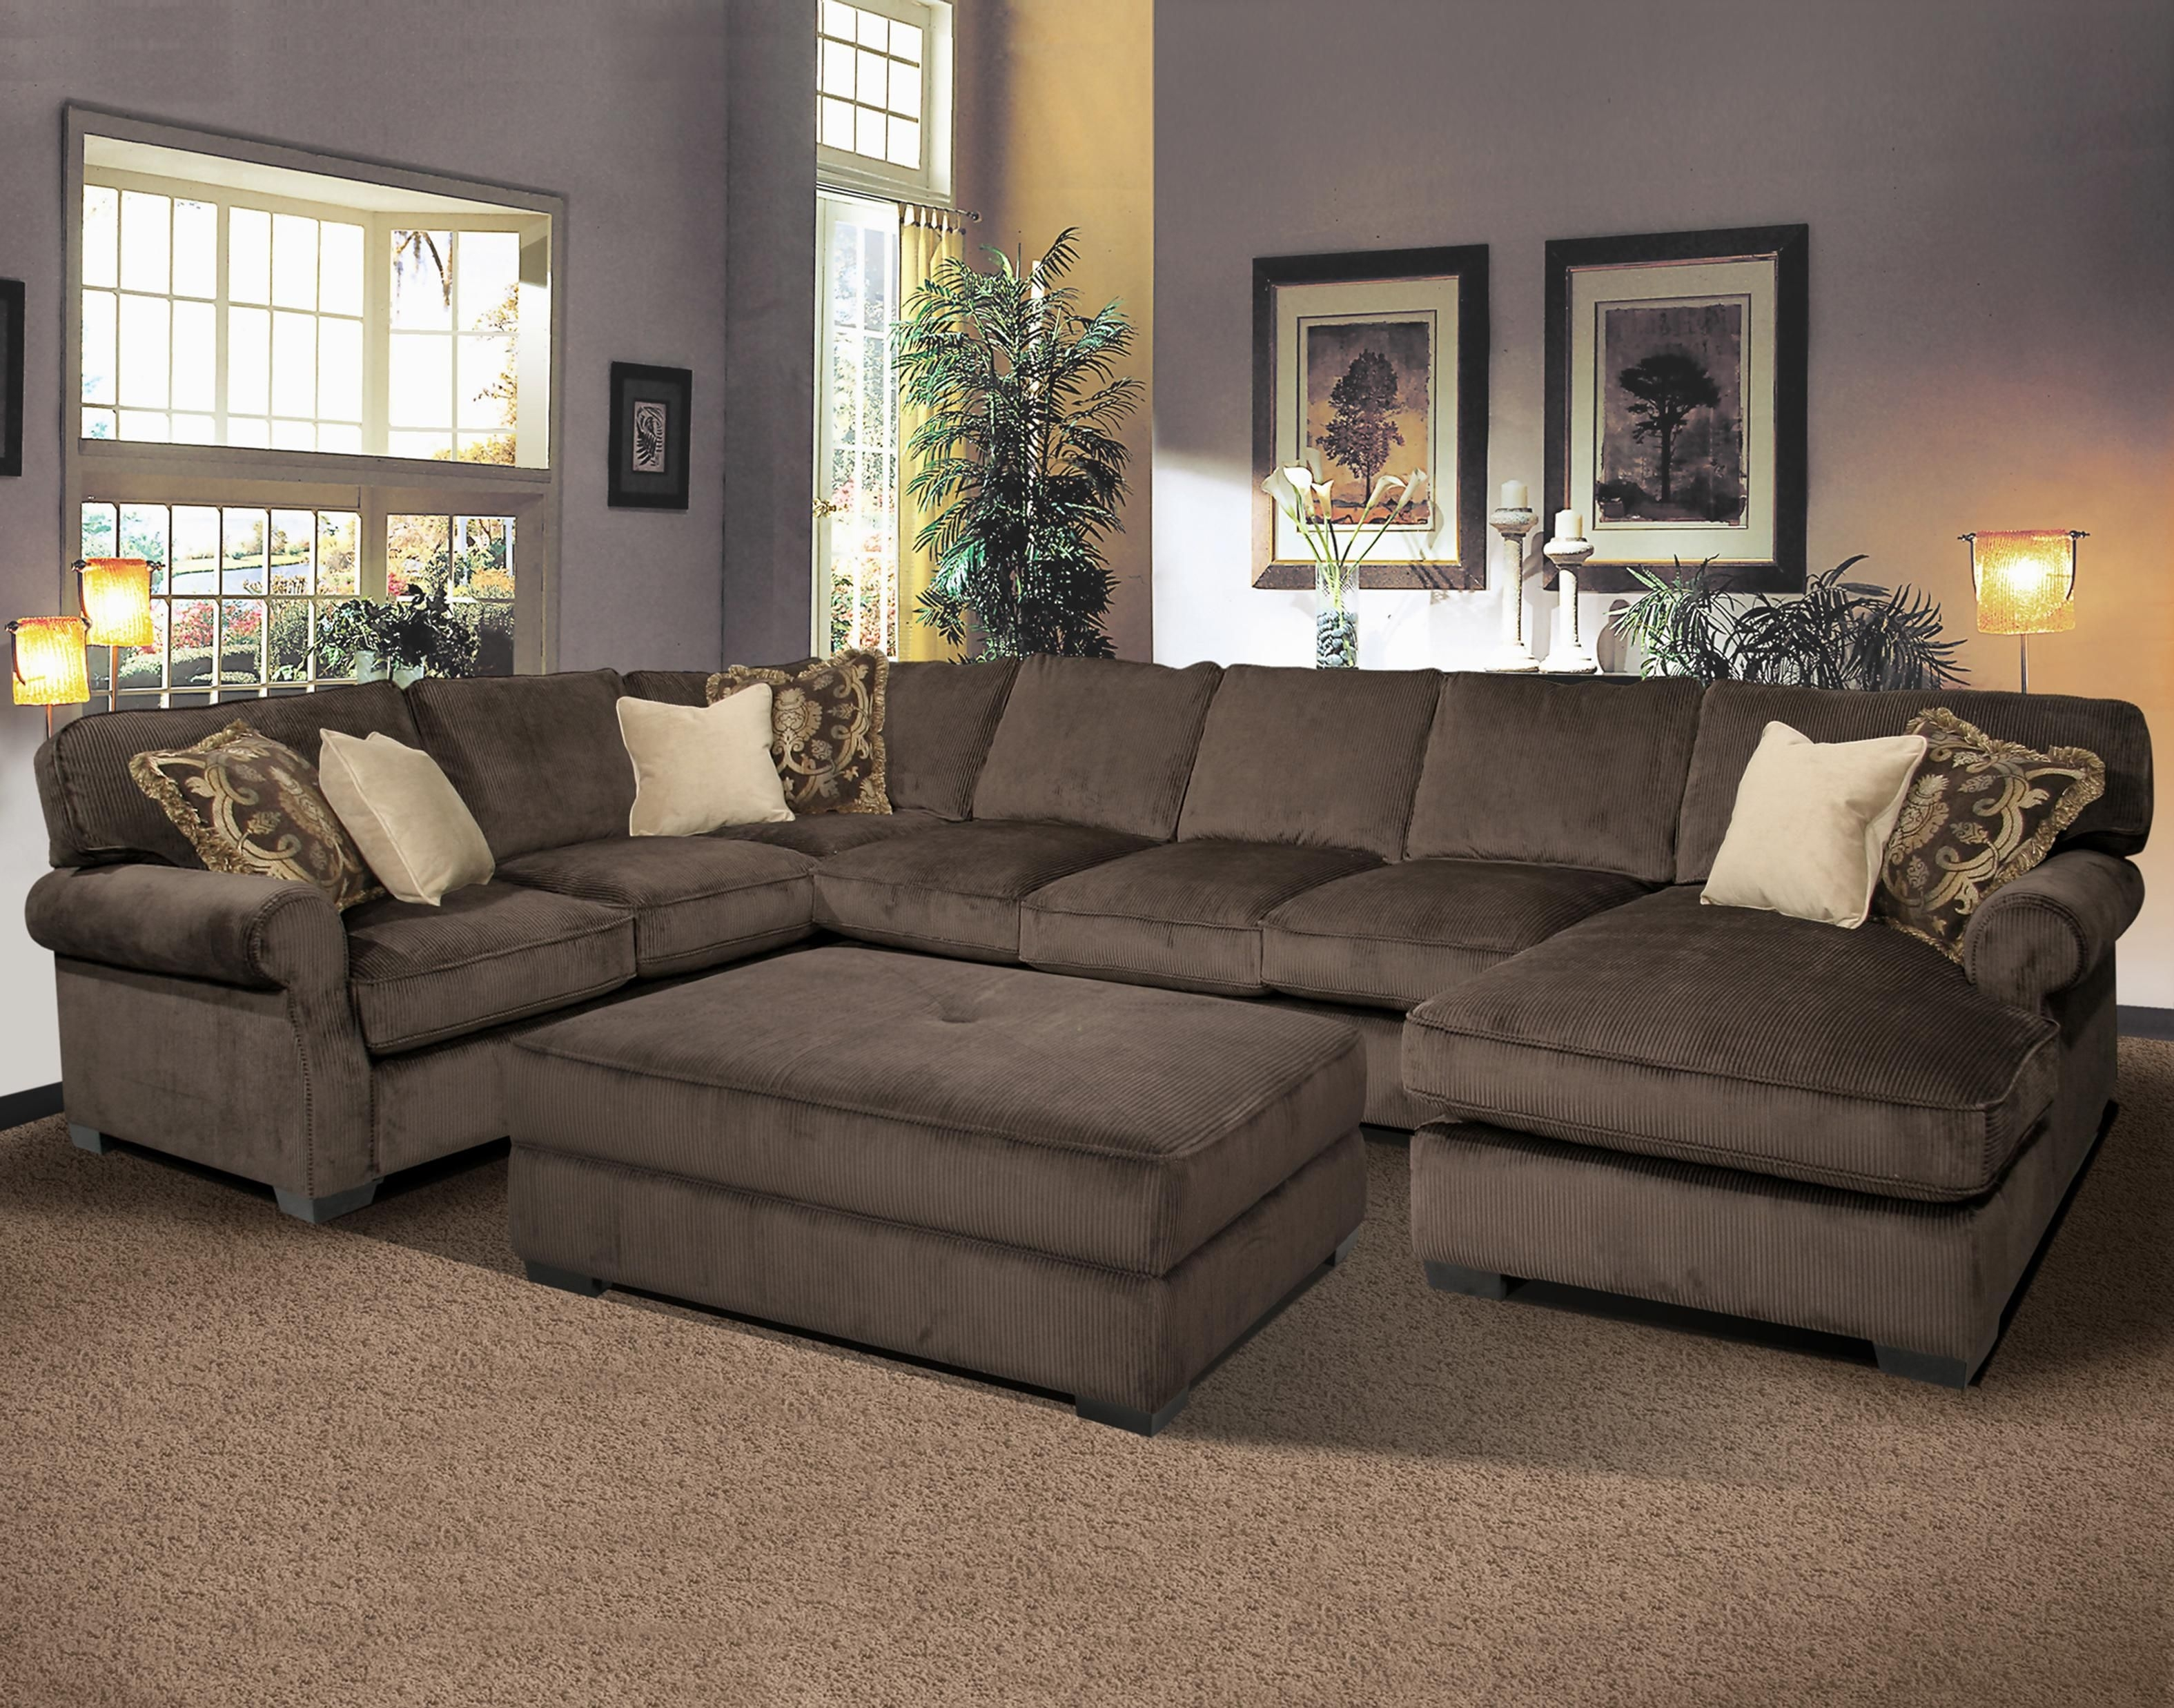 Big And Comfy Grand Island Large, 7 Seat Sectional Sofa With Right In Grand Furniture Sectional Sofas (View 2 of 10)